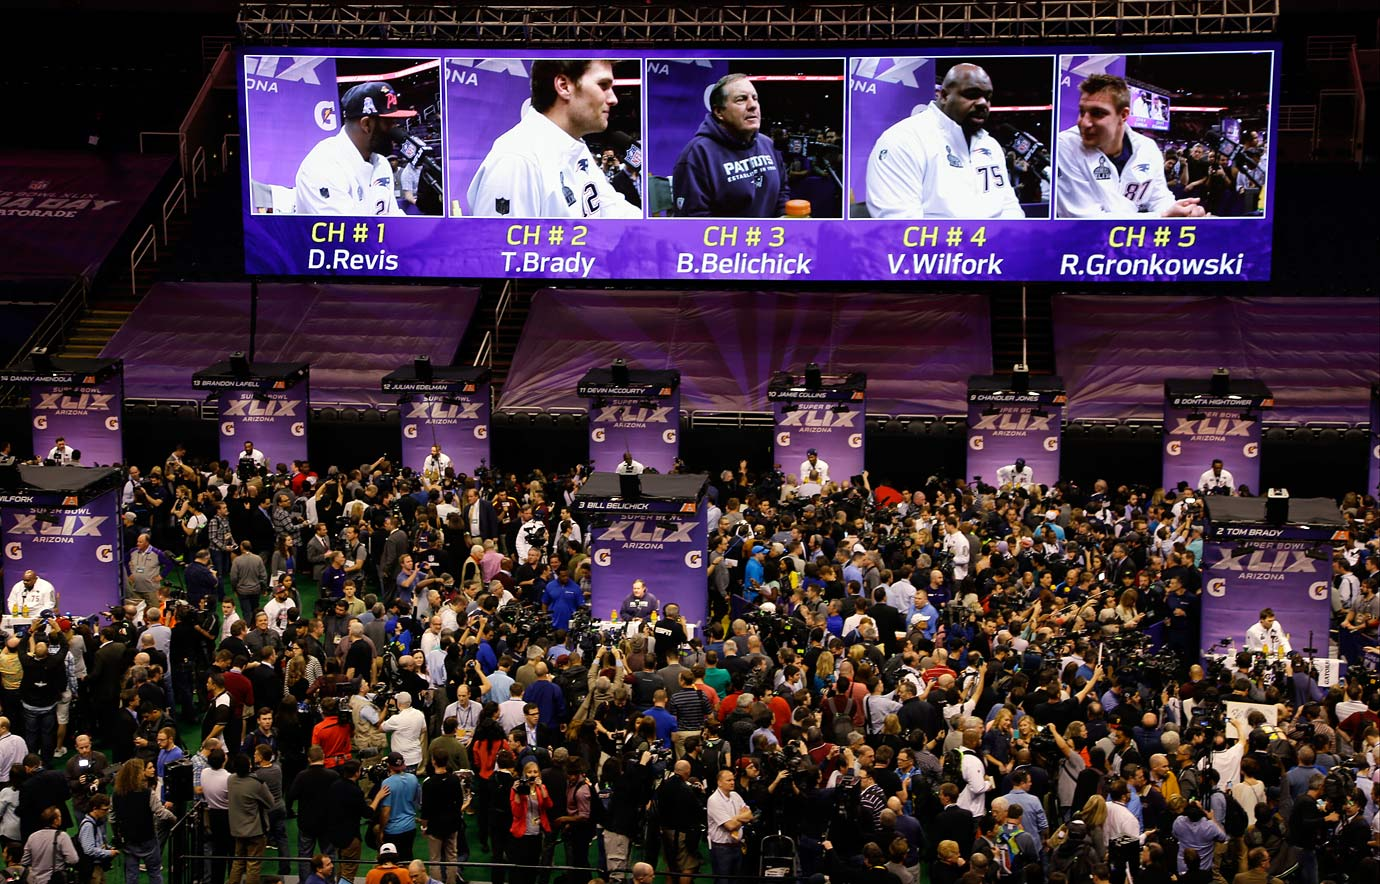 The New England Patriots participate in Super Bowl XLIX Media Day in Phoenix, Ariz.